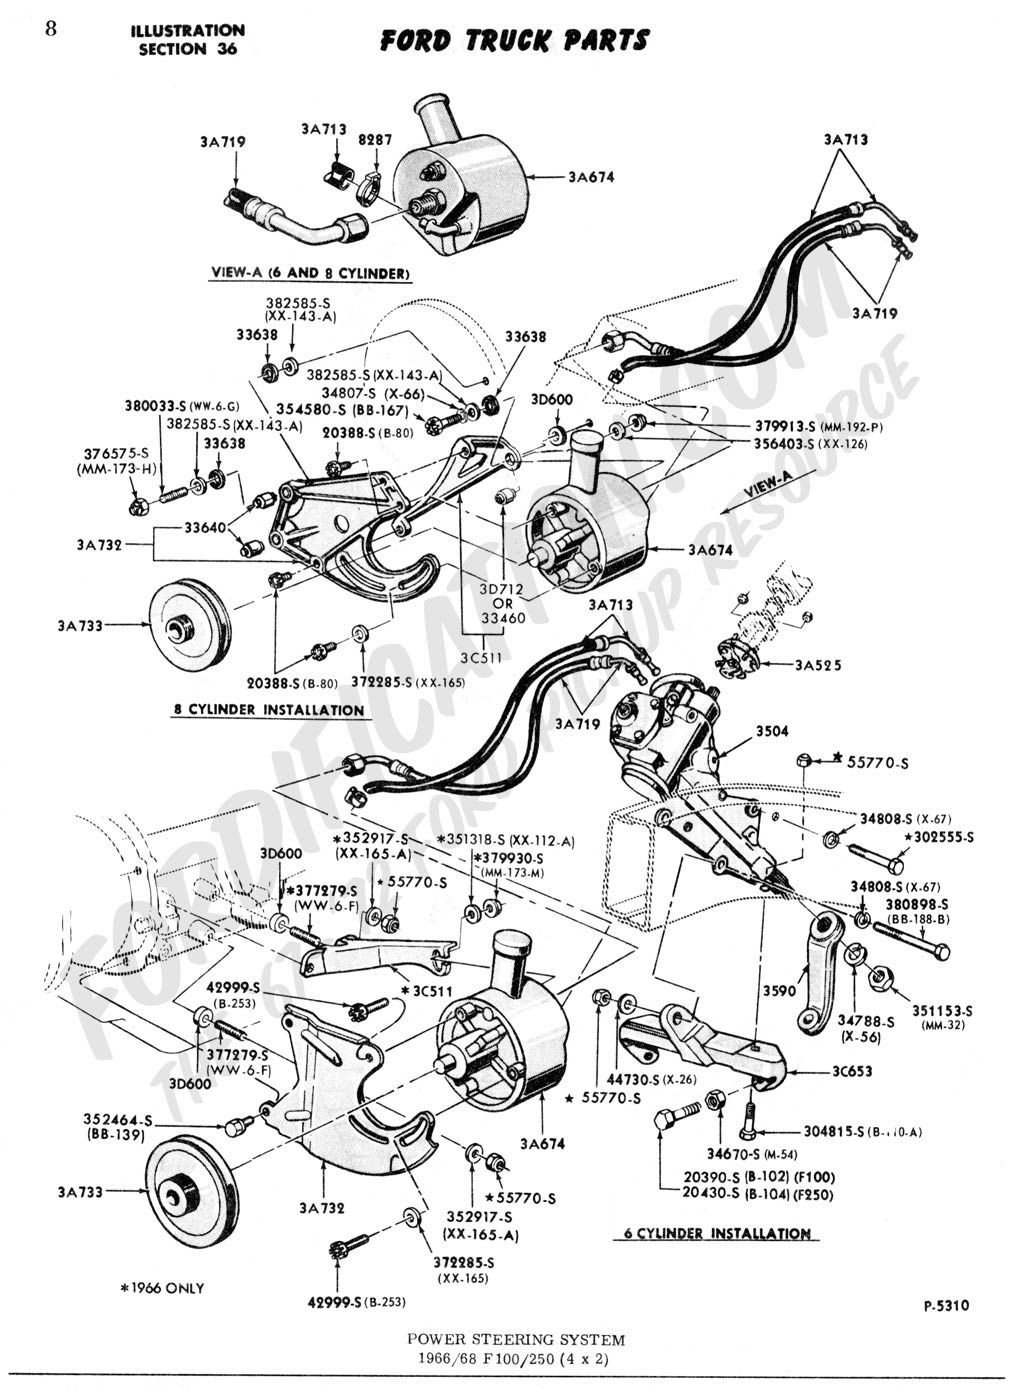 1977 ford truck steering diagram